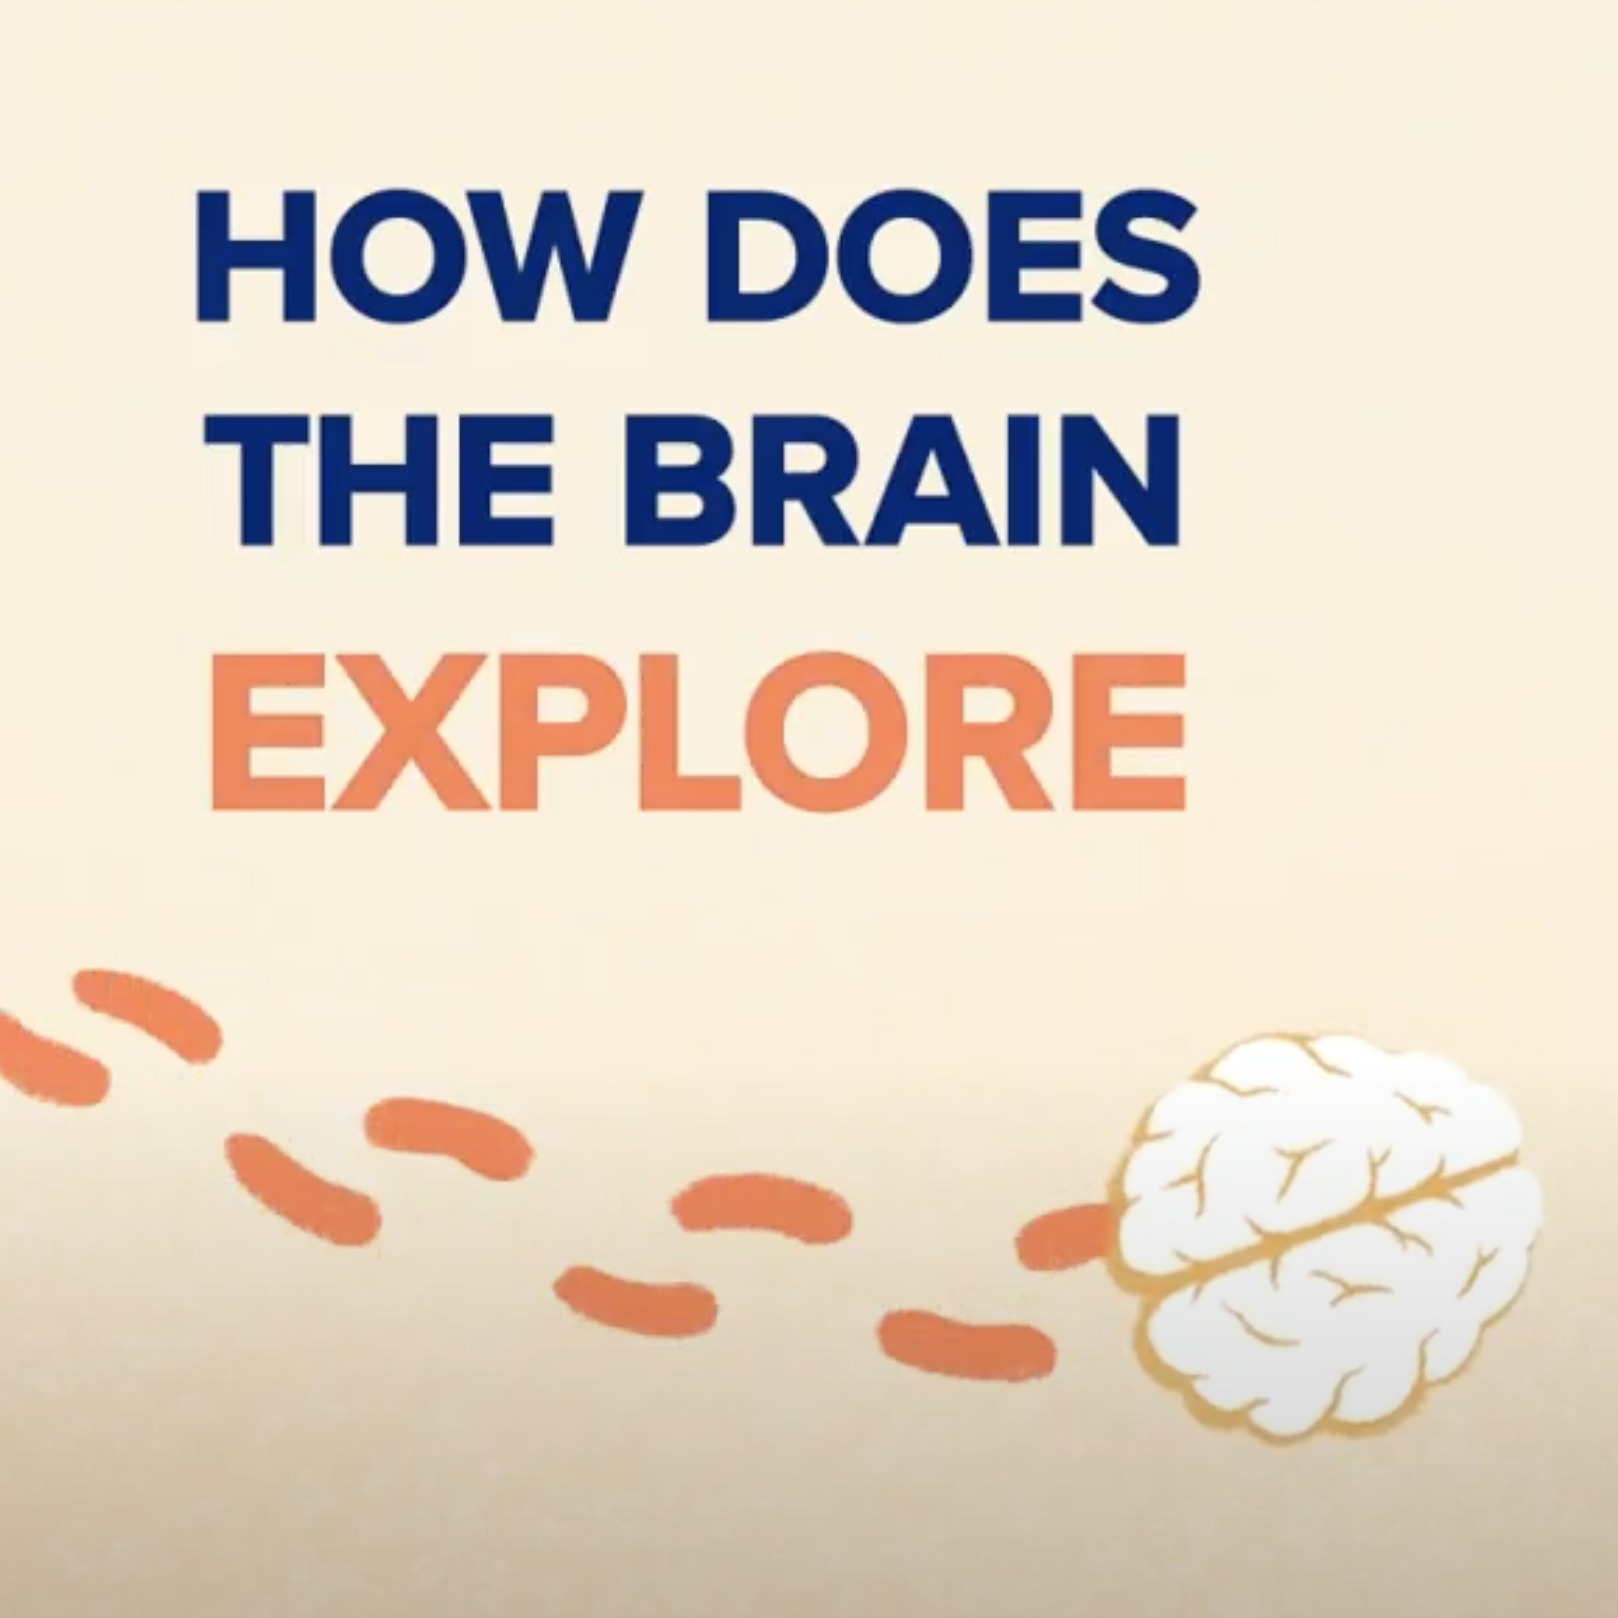 How Does the Brain Explore?